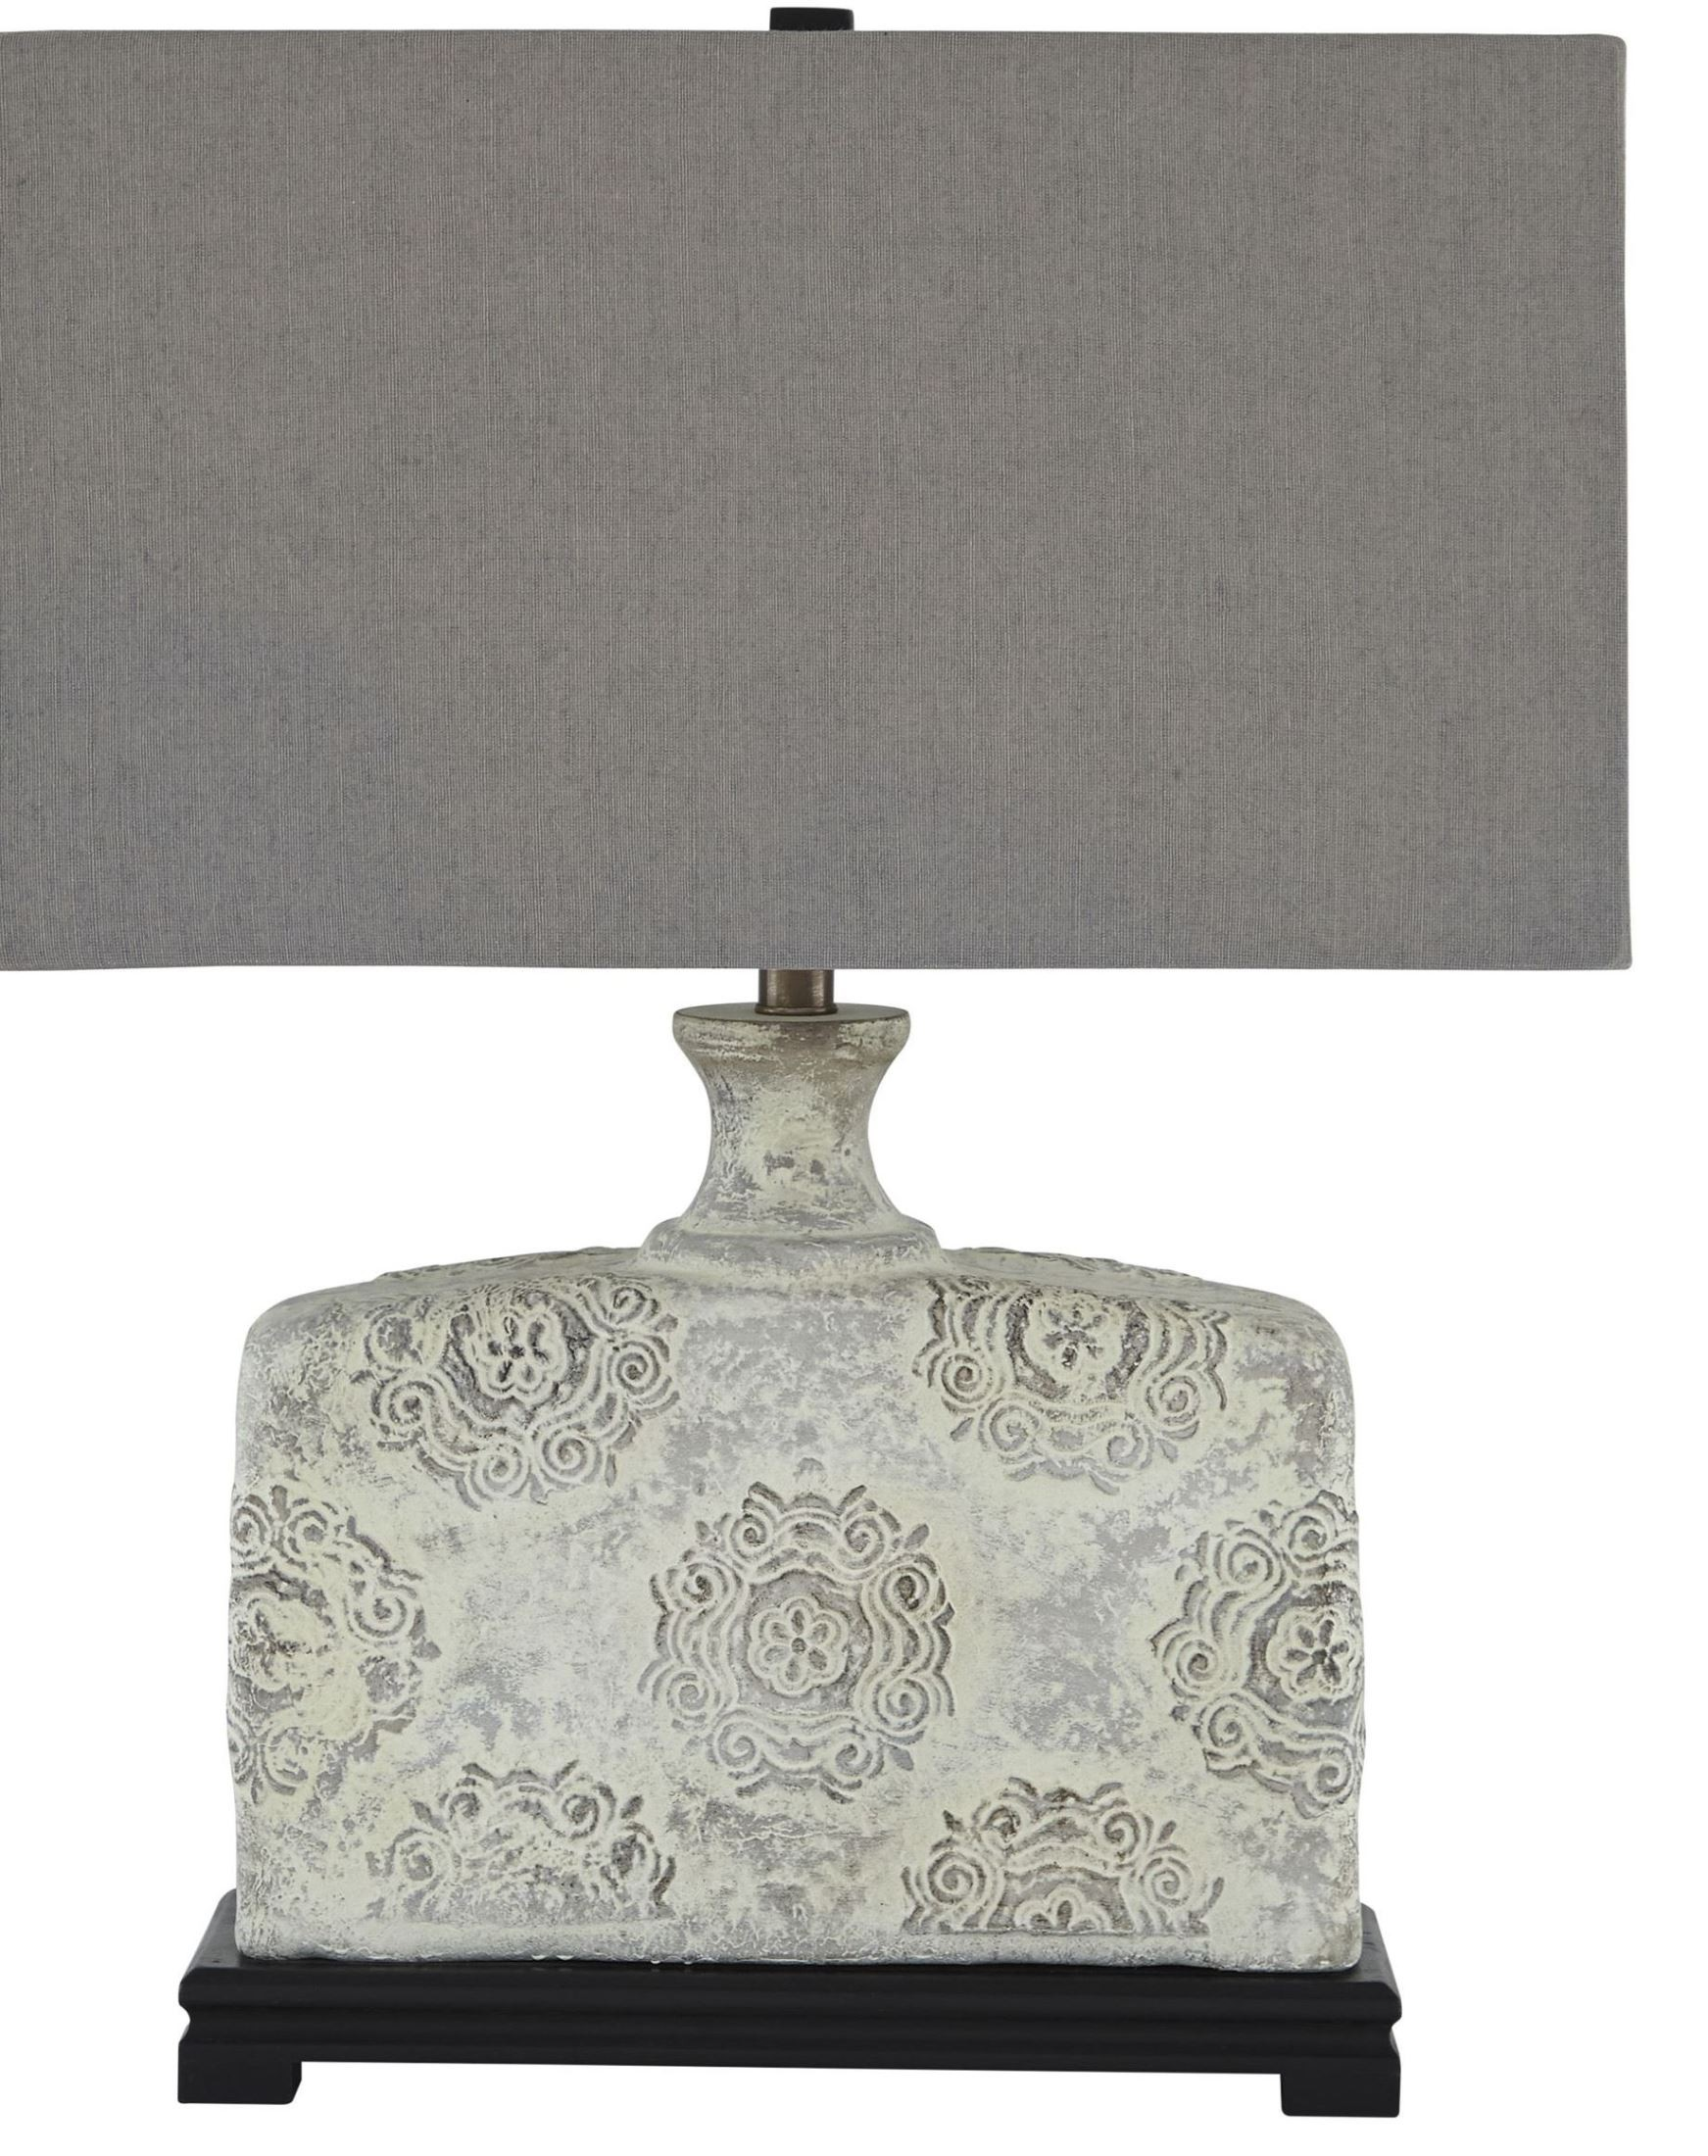 antique white table lamp from ashley l235464 coleman. Black Bedroom Furniture Sets. Home Design Ideas